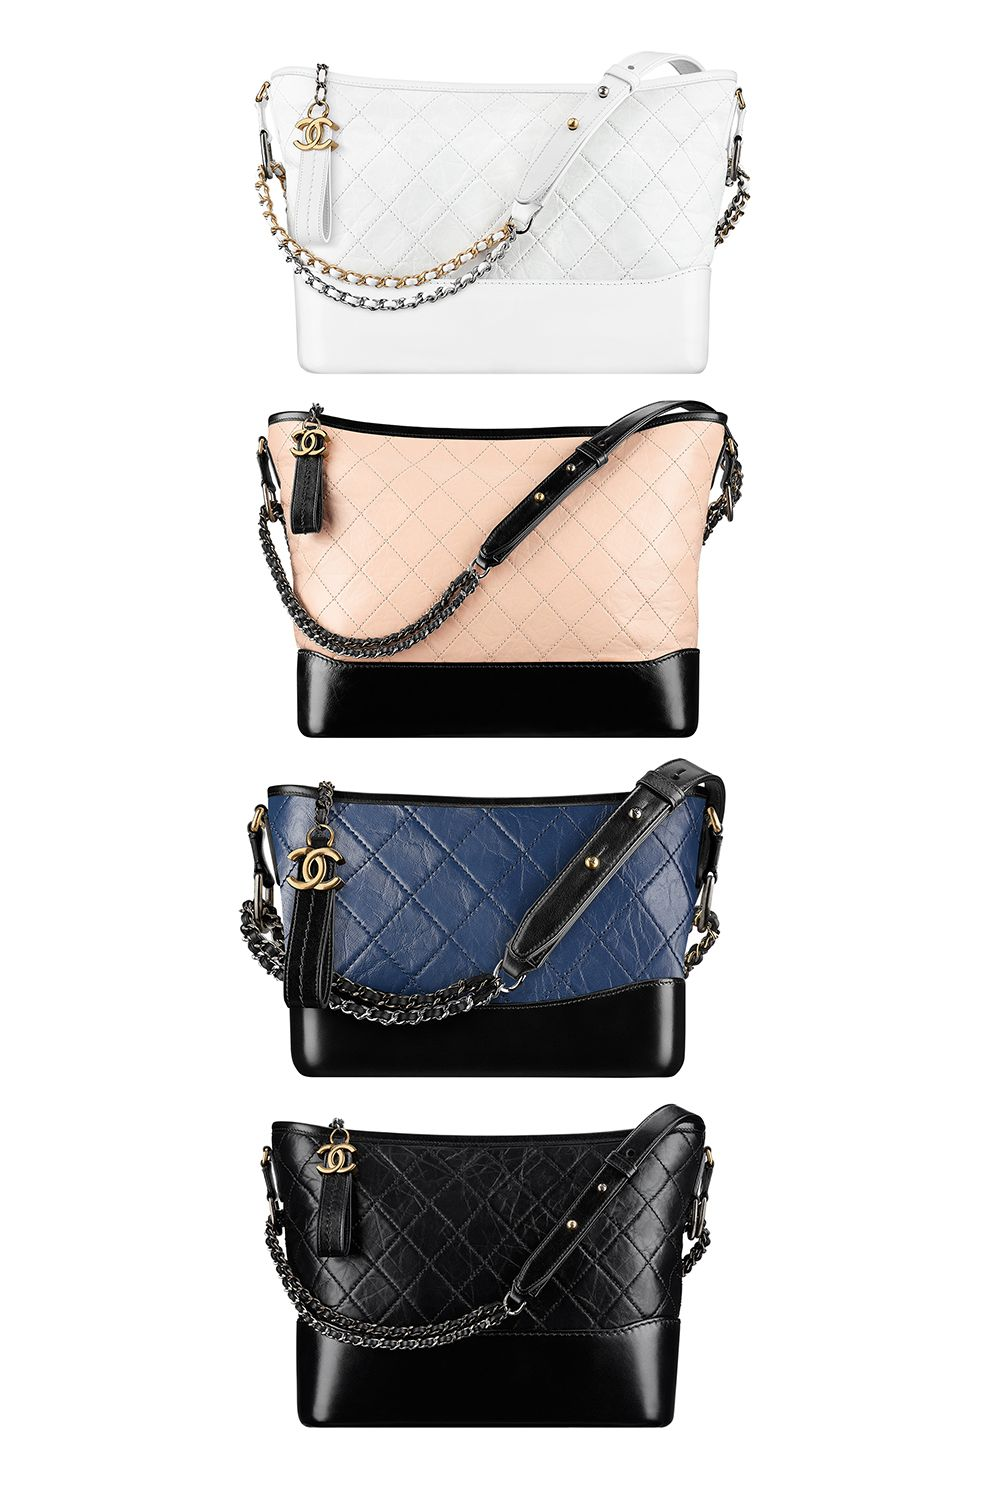 6793c1ae02f9e9 12 Designer Bags You Won't Regret Investing in This Spring | Chanel ...